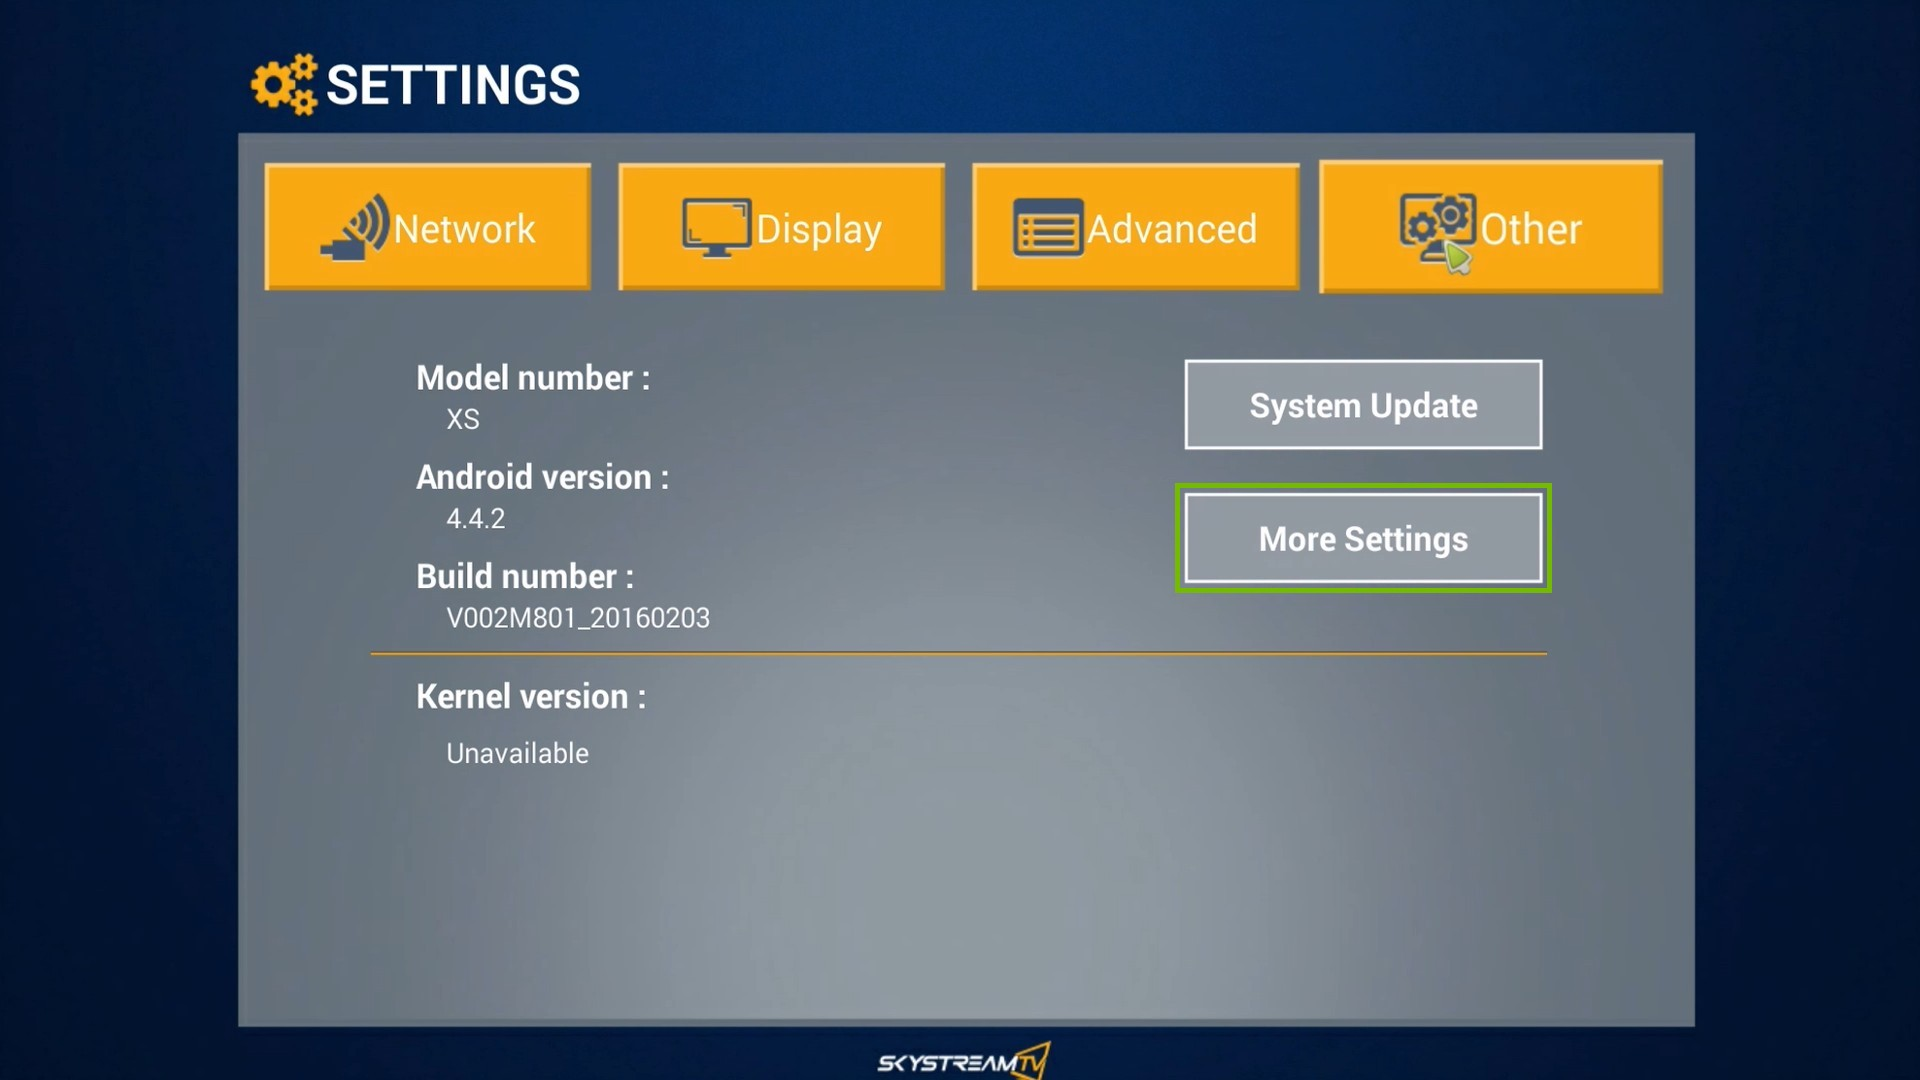 SkyStream One Settings menu, highlighting the More Settings option.